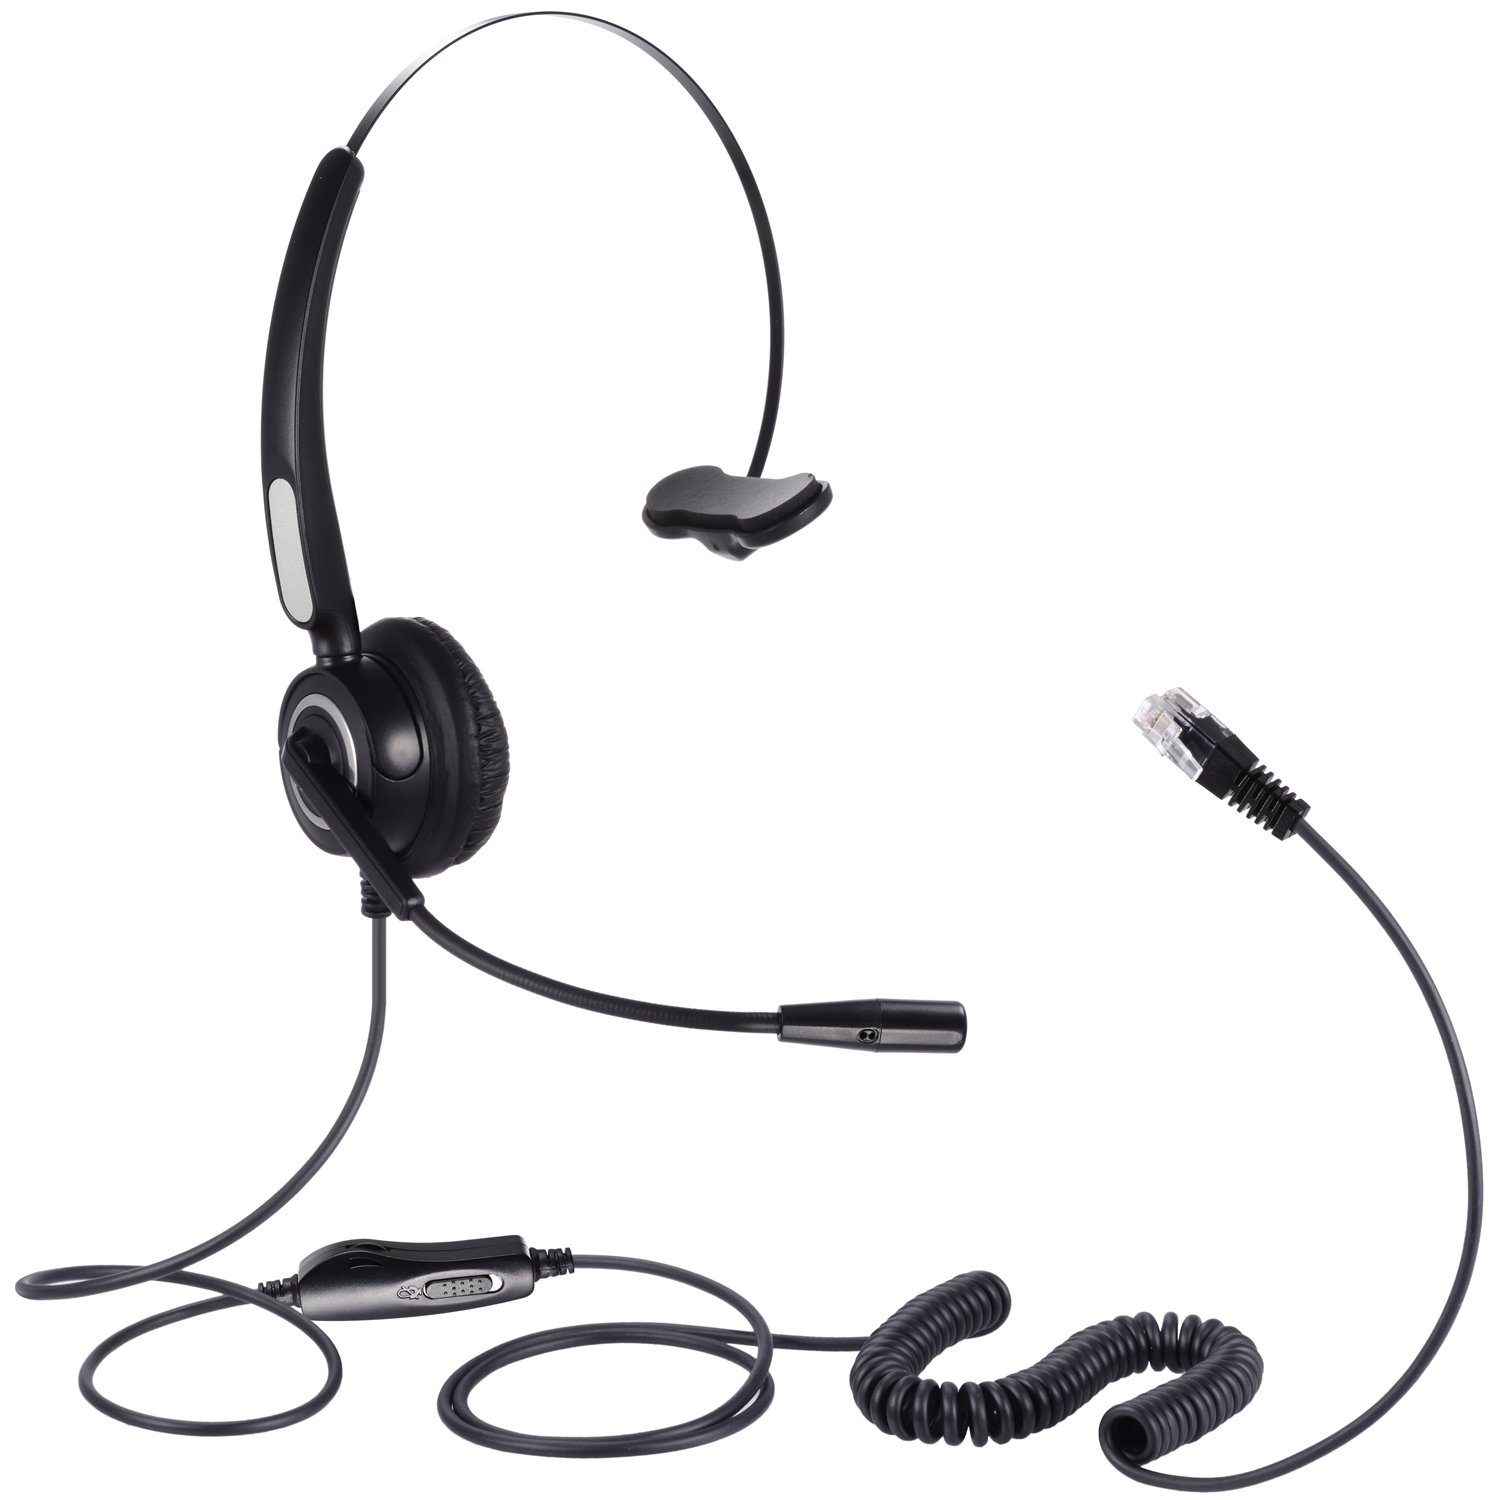 Hands-free Corded Headset, SoulBay Call Center RJ9 Monaural Telephone with 4-Pin RJ9 Crystal Head for Desk Phone Telephone, Suits Phone Sales, Banks and Telecom Operator - [Headset Adapter Included]